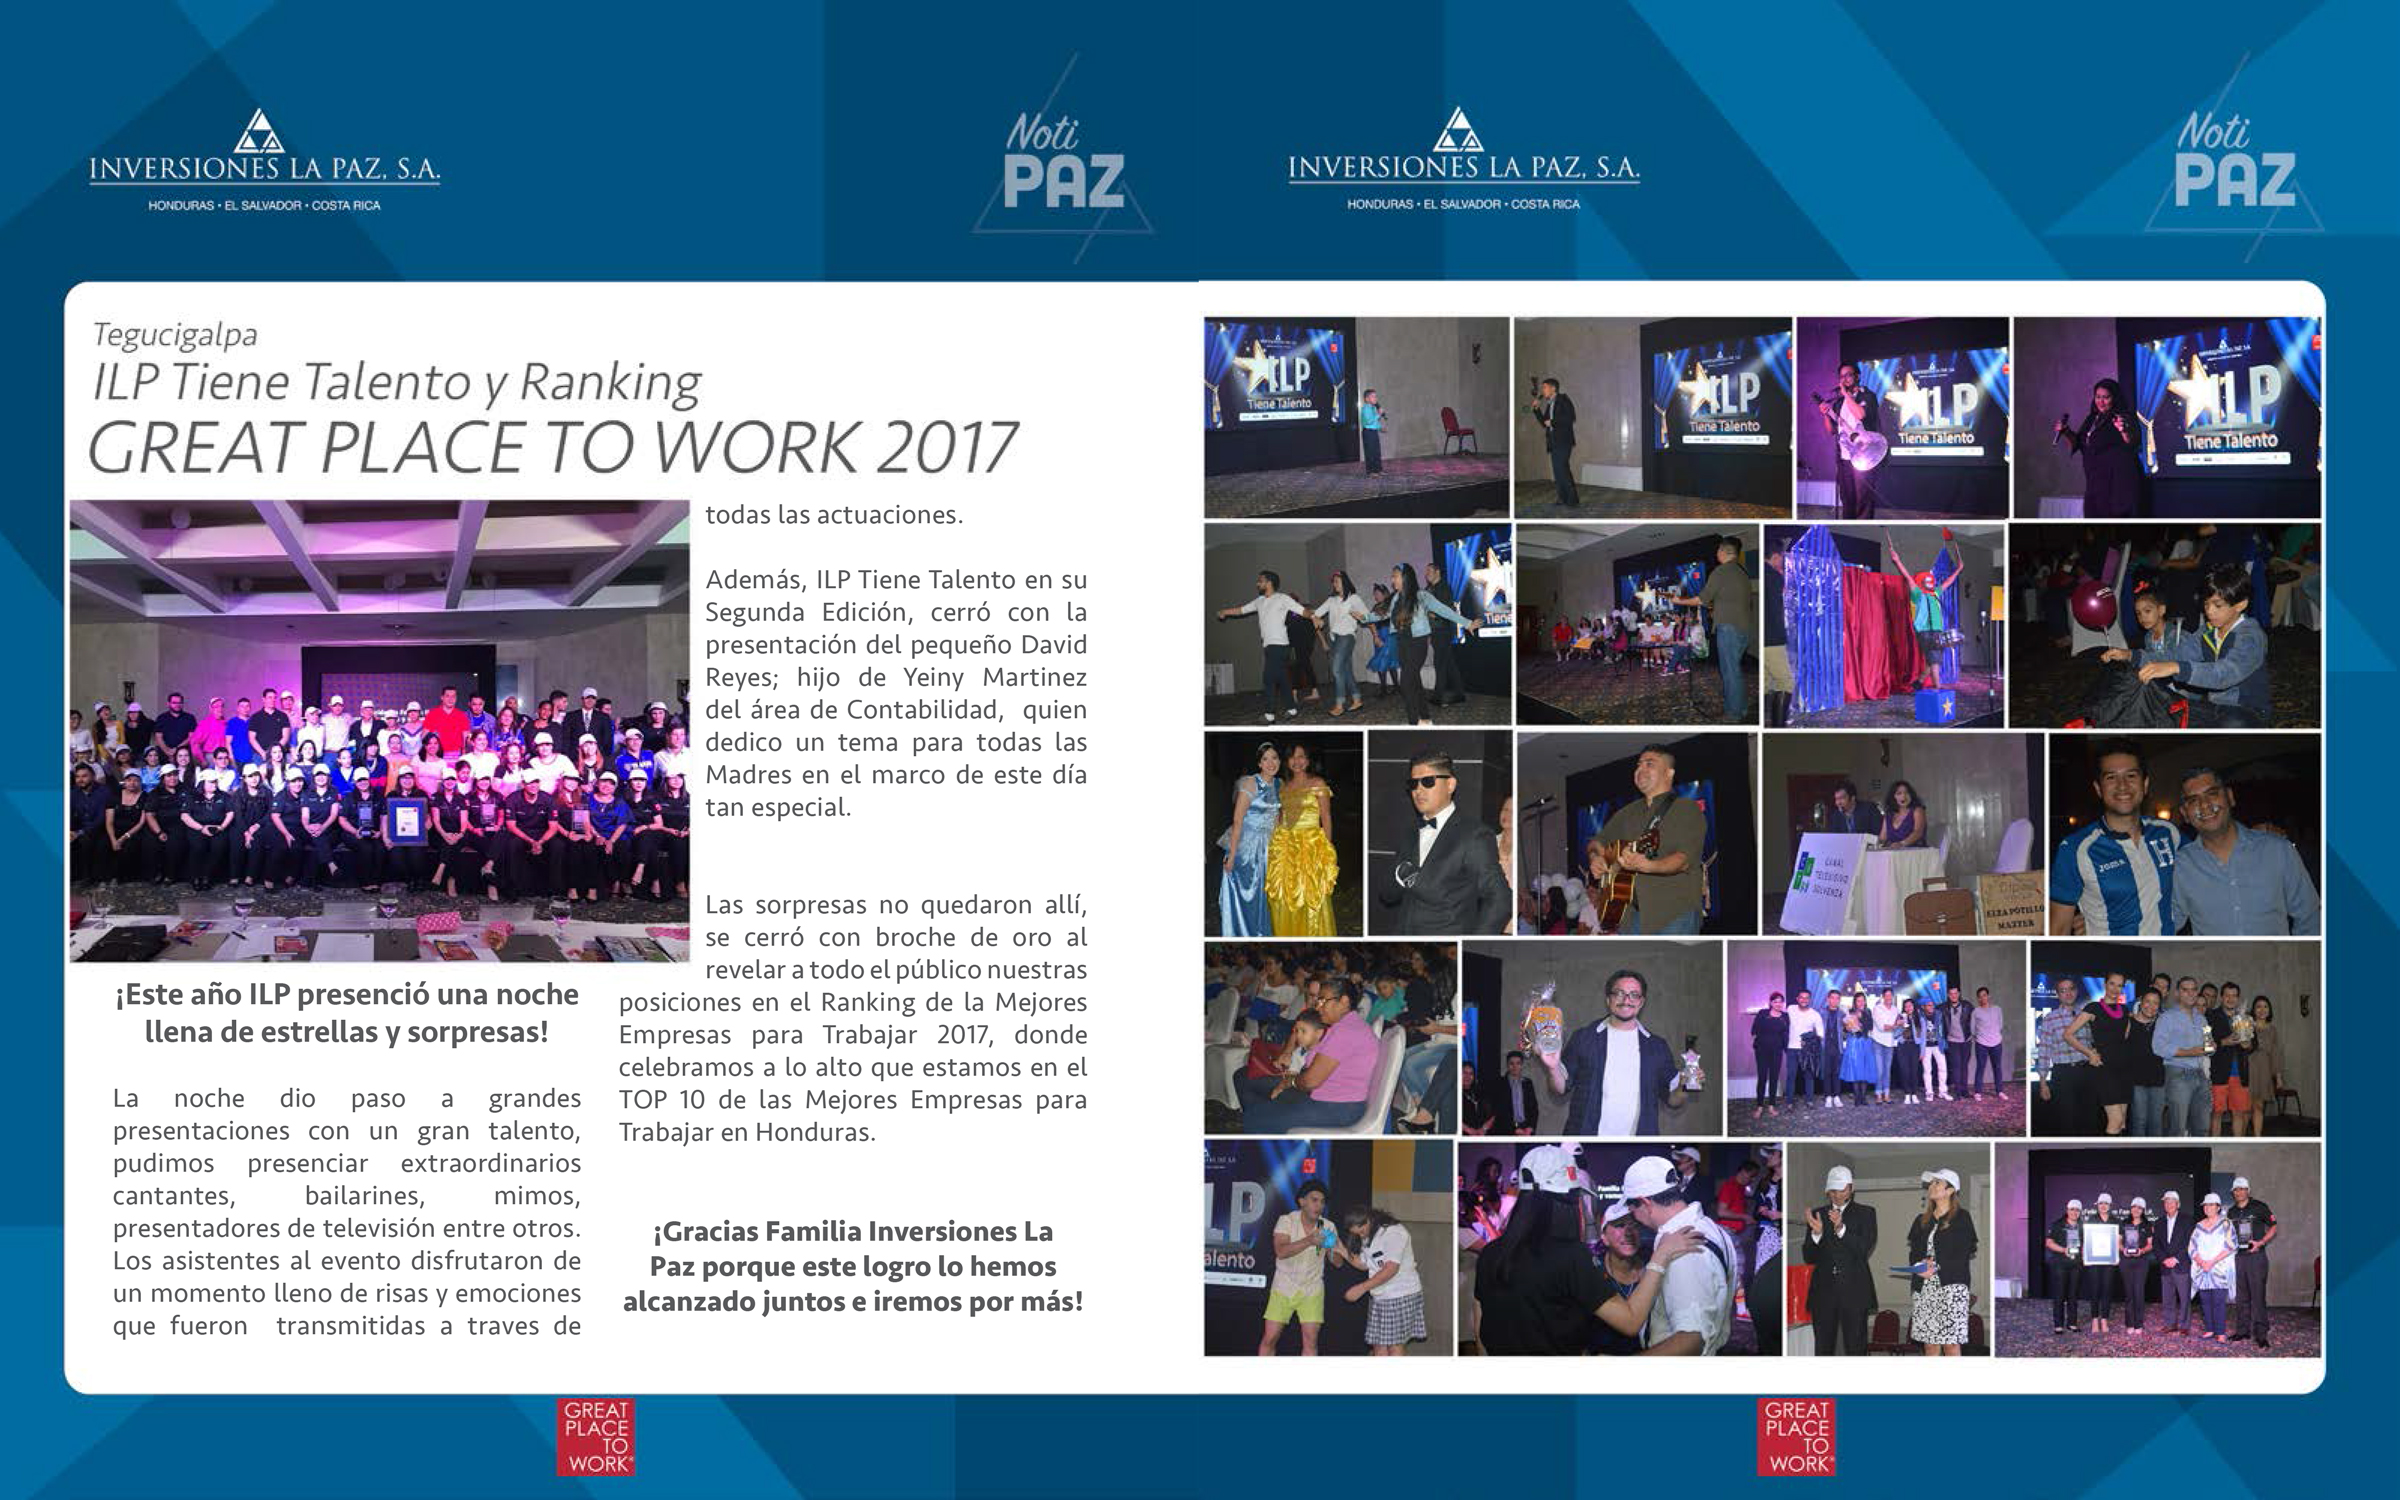 Great Place to Work 2017